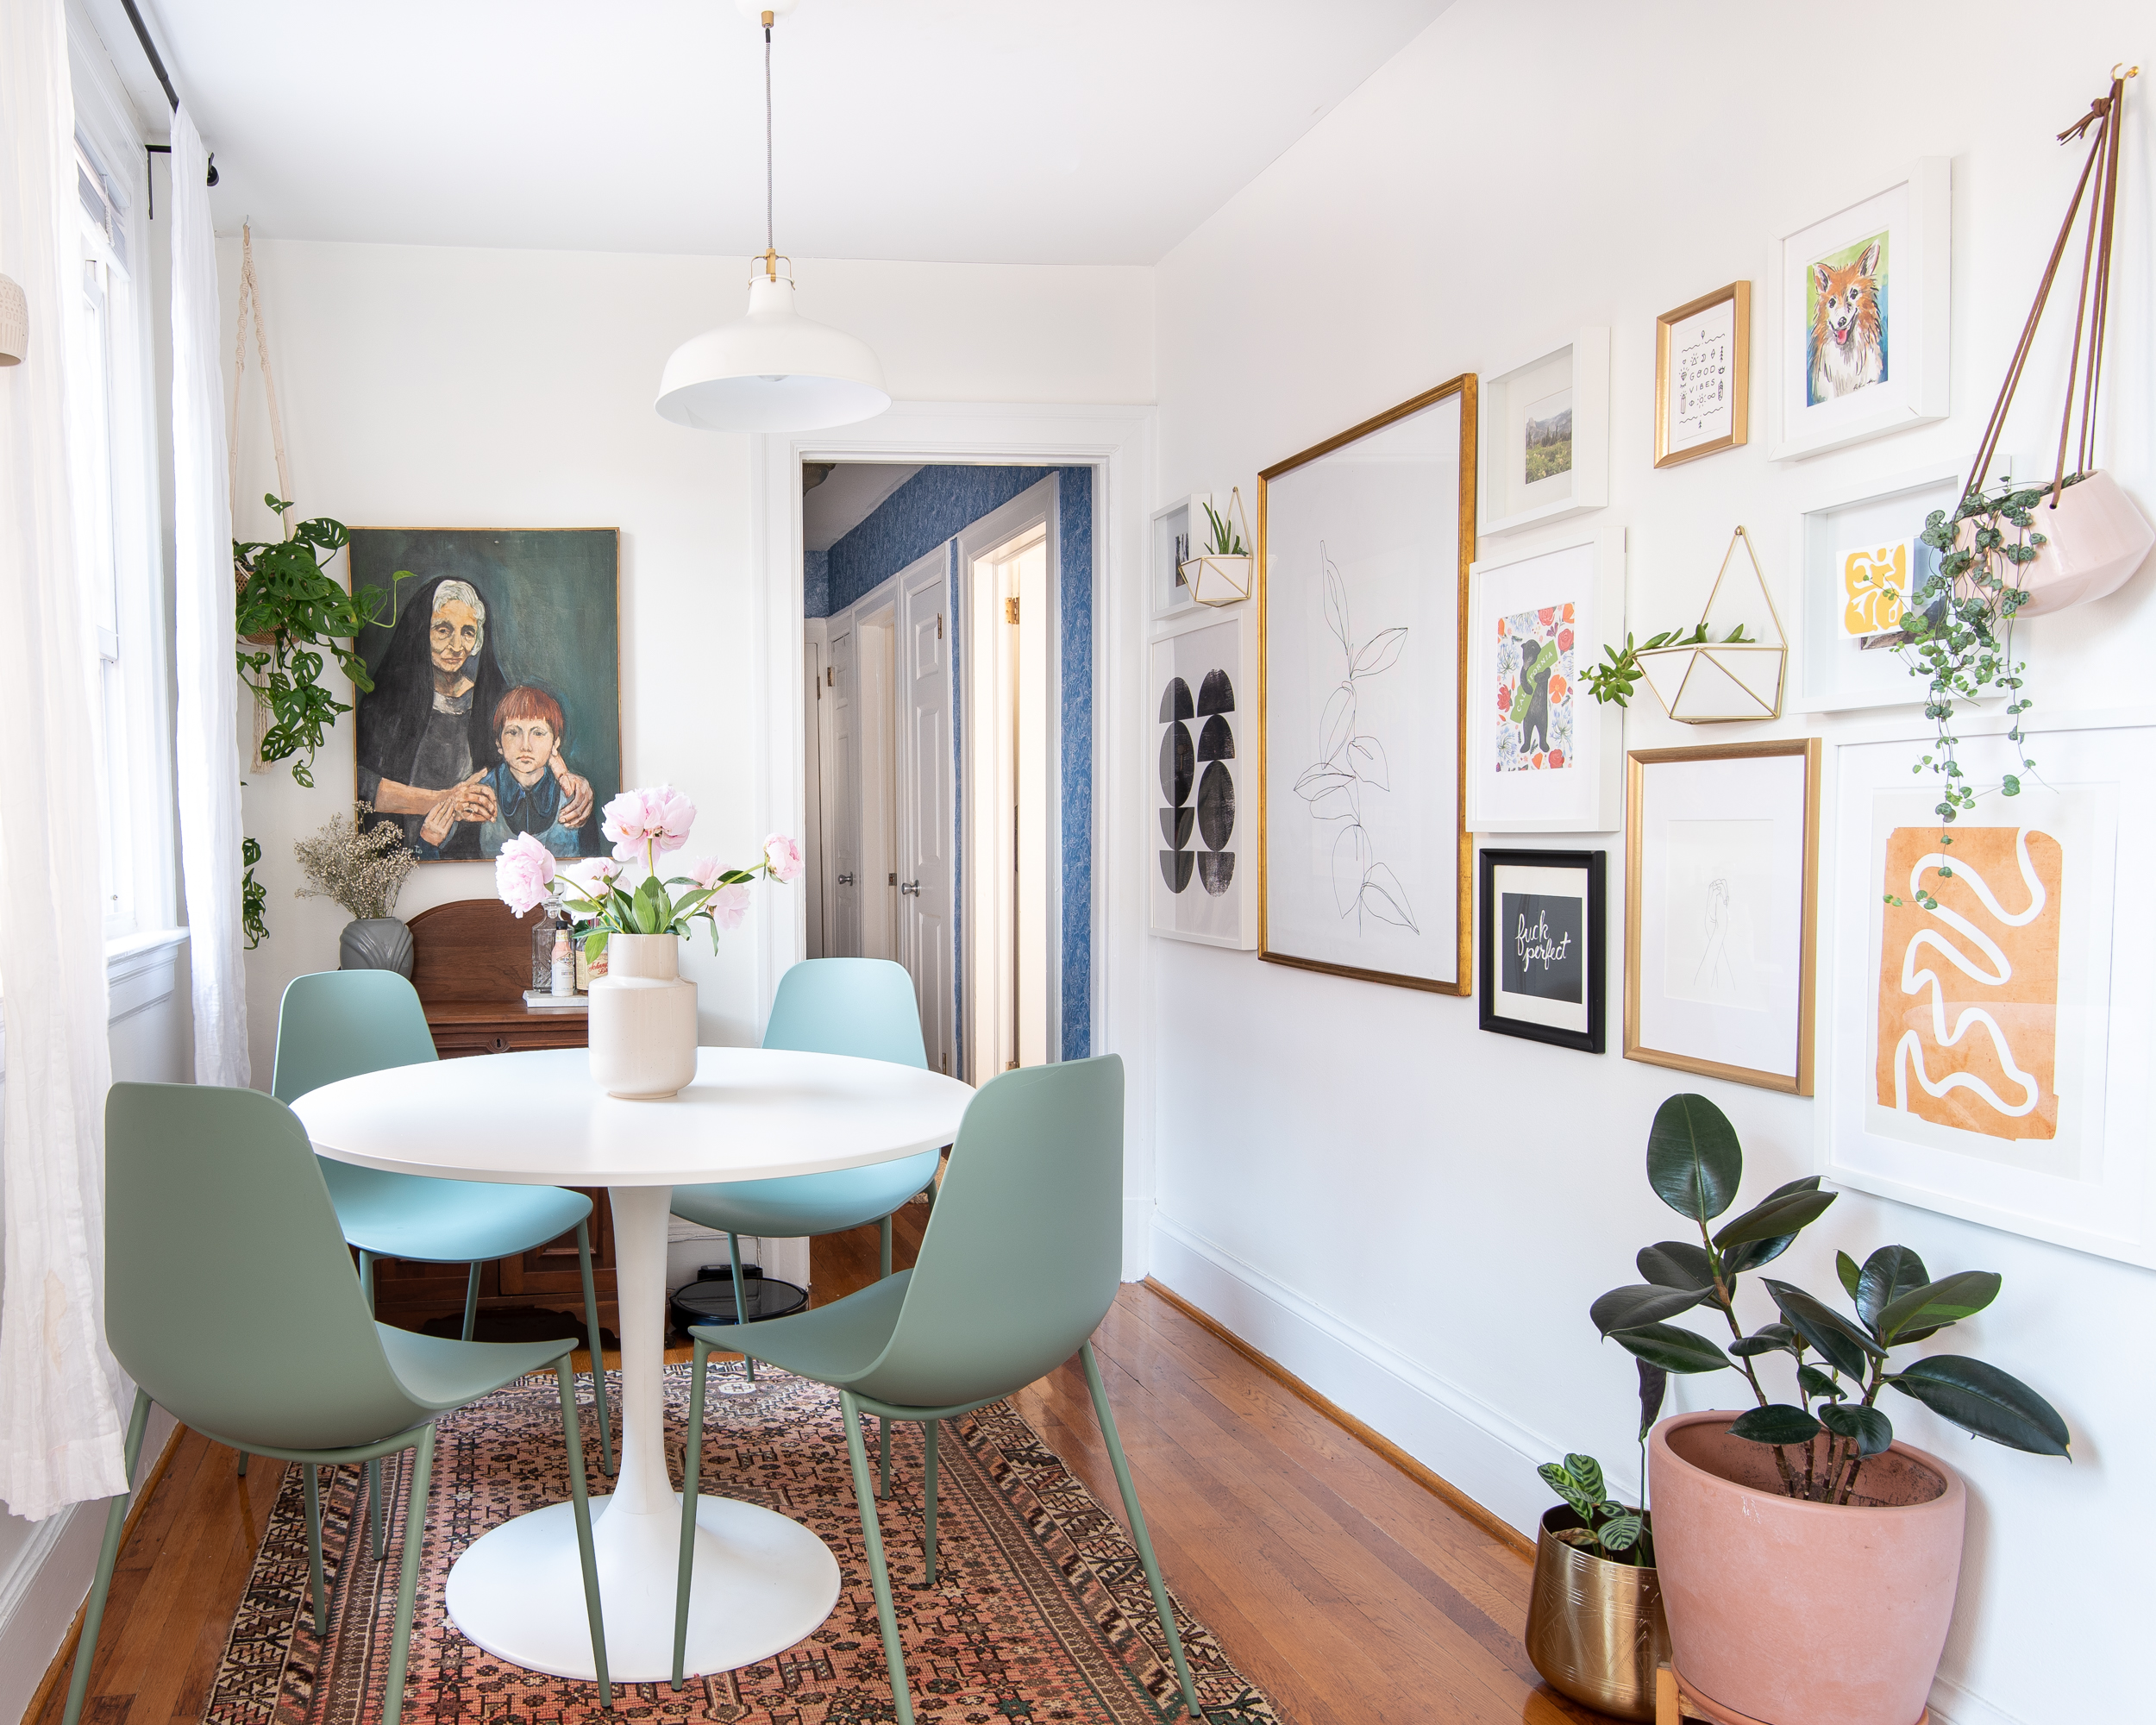 Dominique Gebru S Recent Articles Apartment Therapy Apartment Therapy